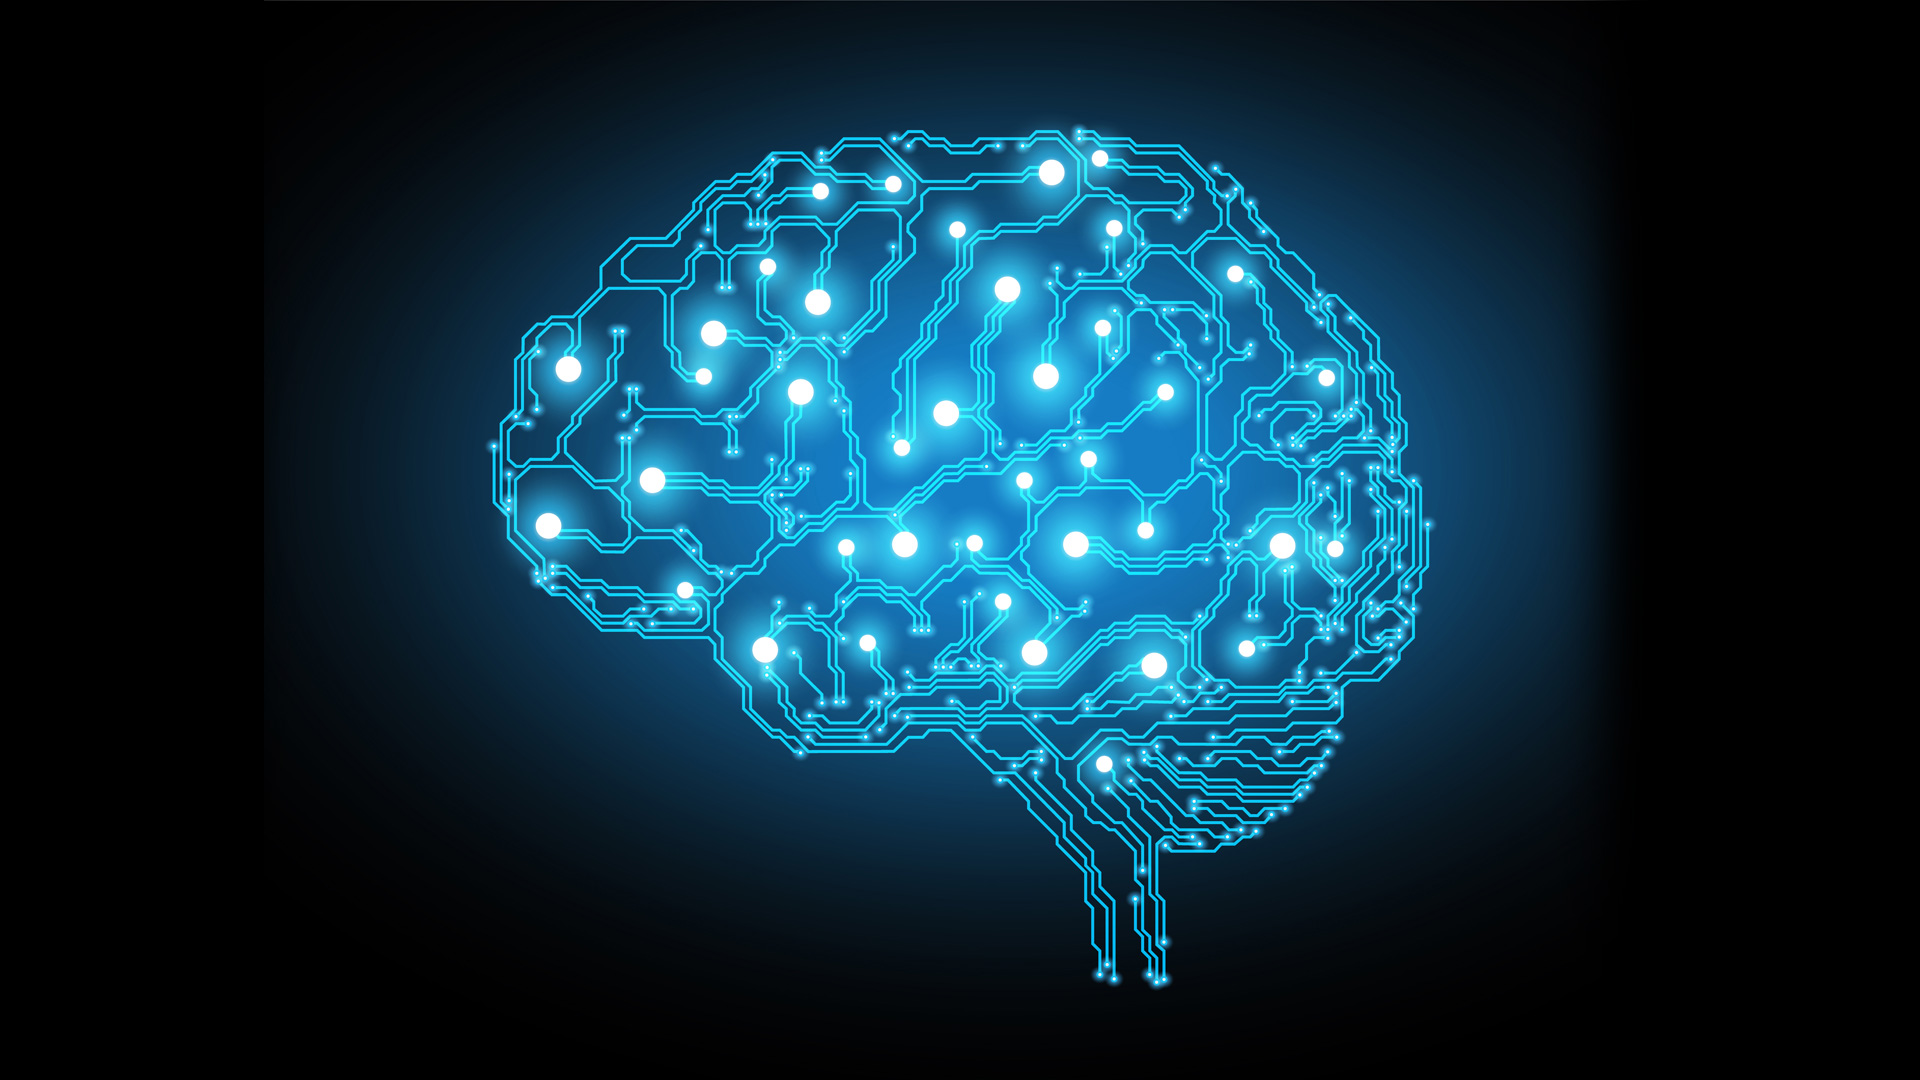 Within ten years, computers will be able to perform as many operations as the human brain (ten thousand trillion cycles per second)